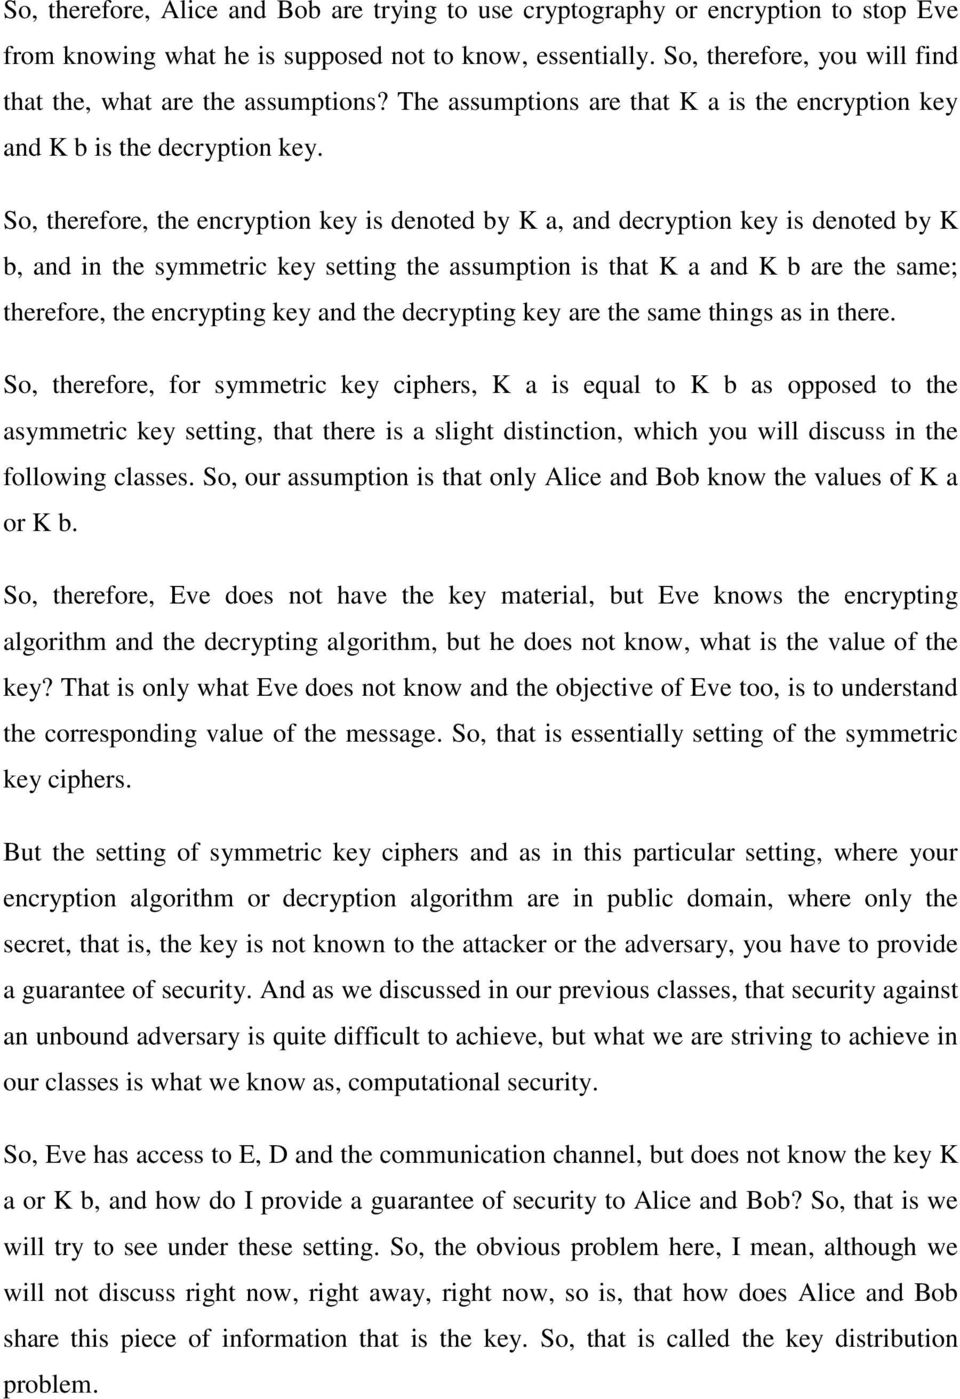 So, therefore, the encryption key is denoted by K a, and decryption key is denoted by K b, and in the symmetric key setting the assumption is that K a and K b are the same; therefore, the encrypting